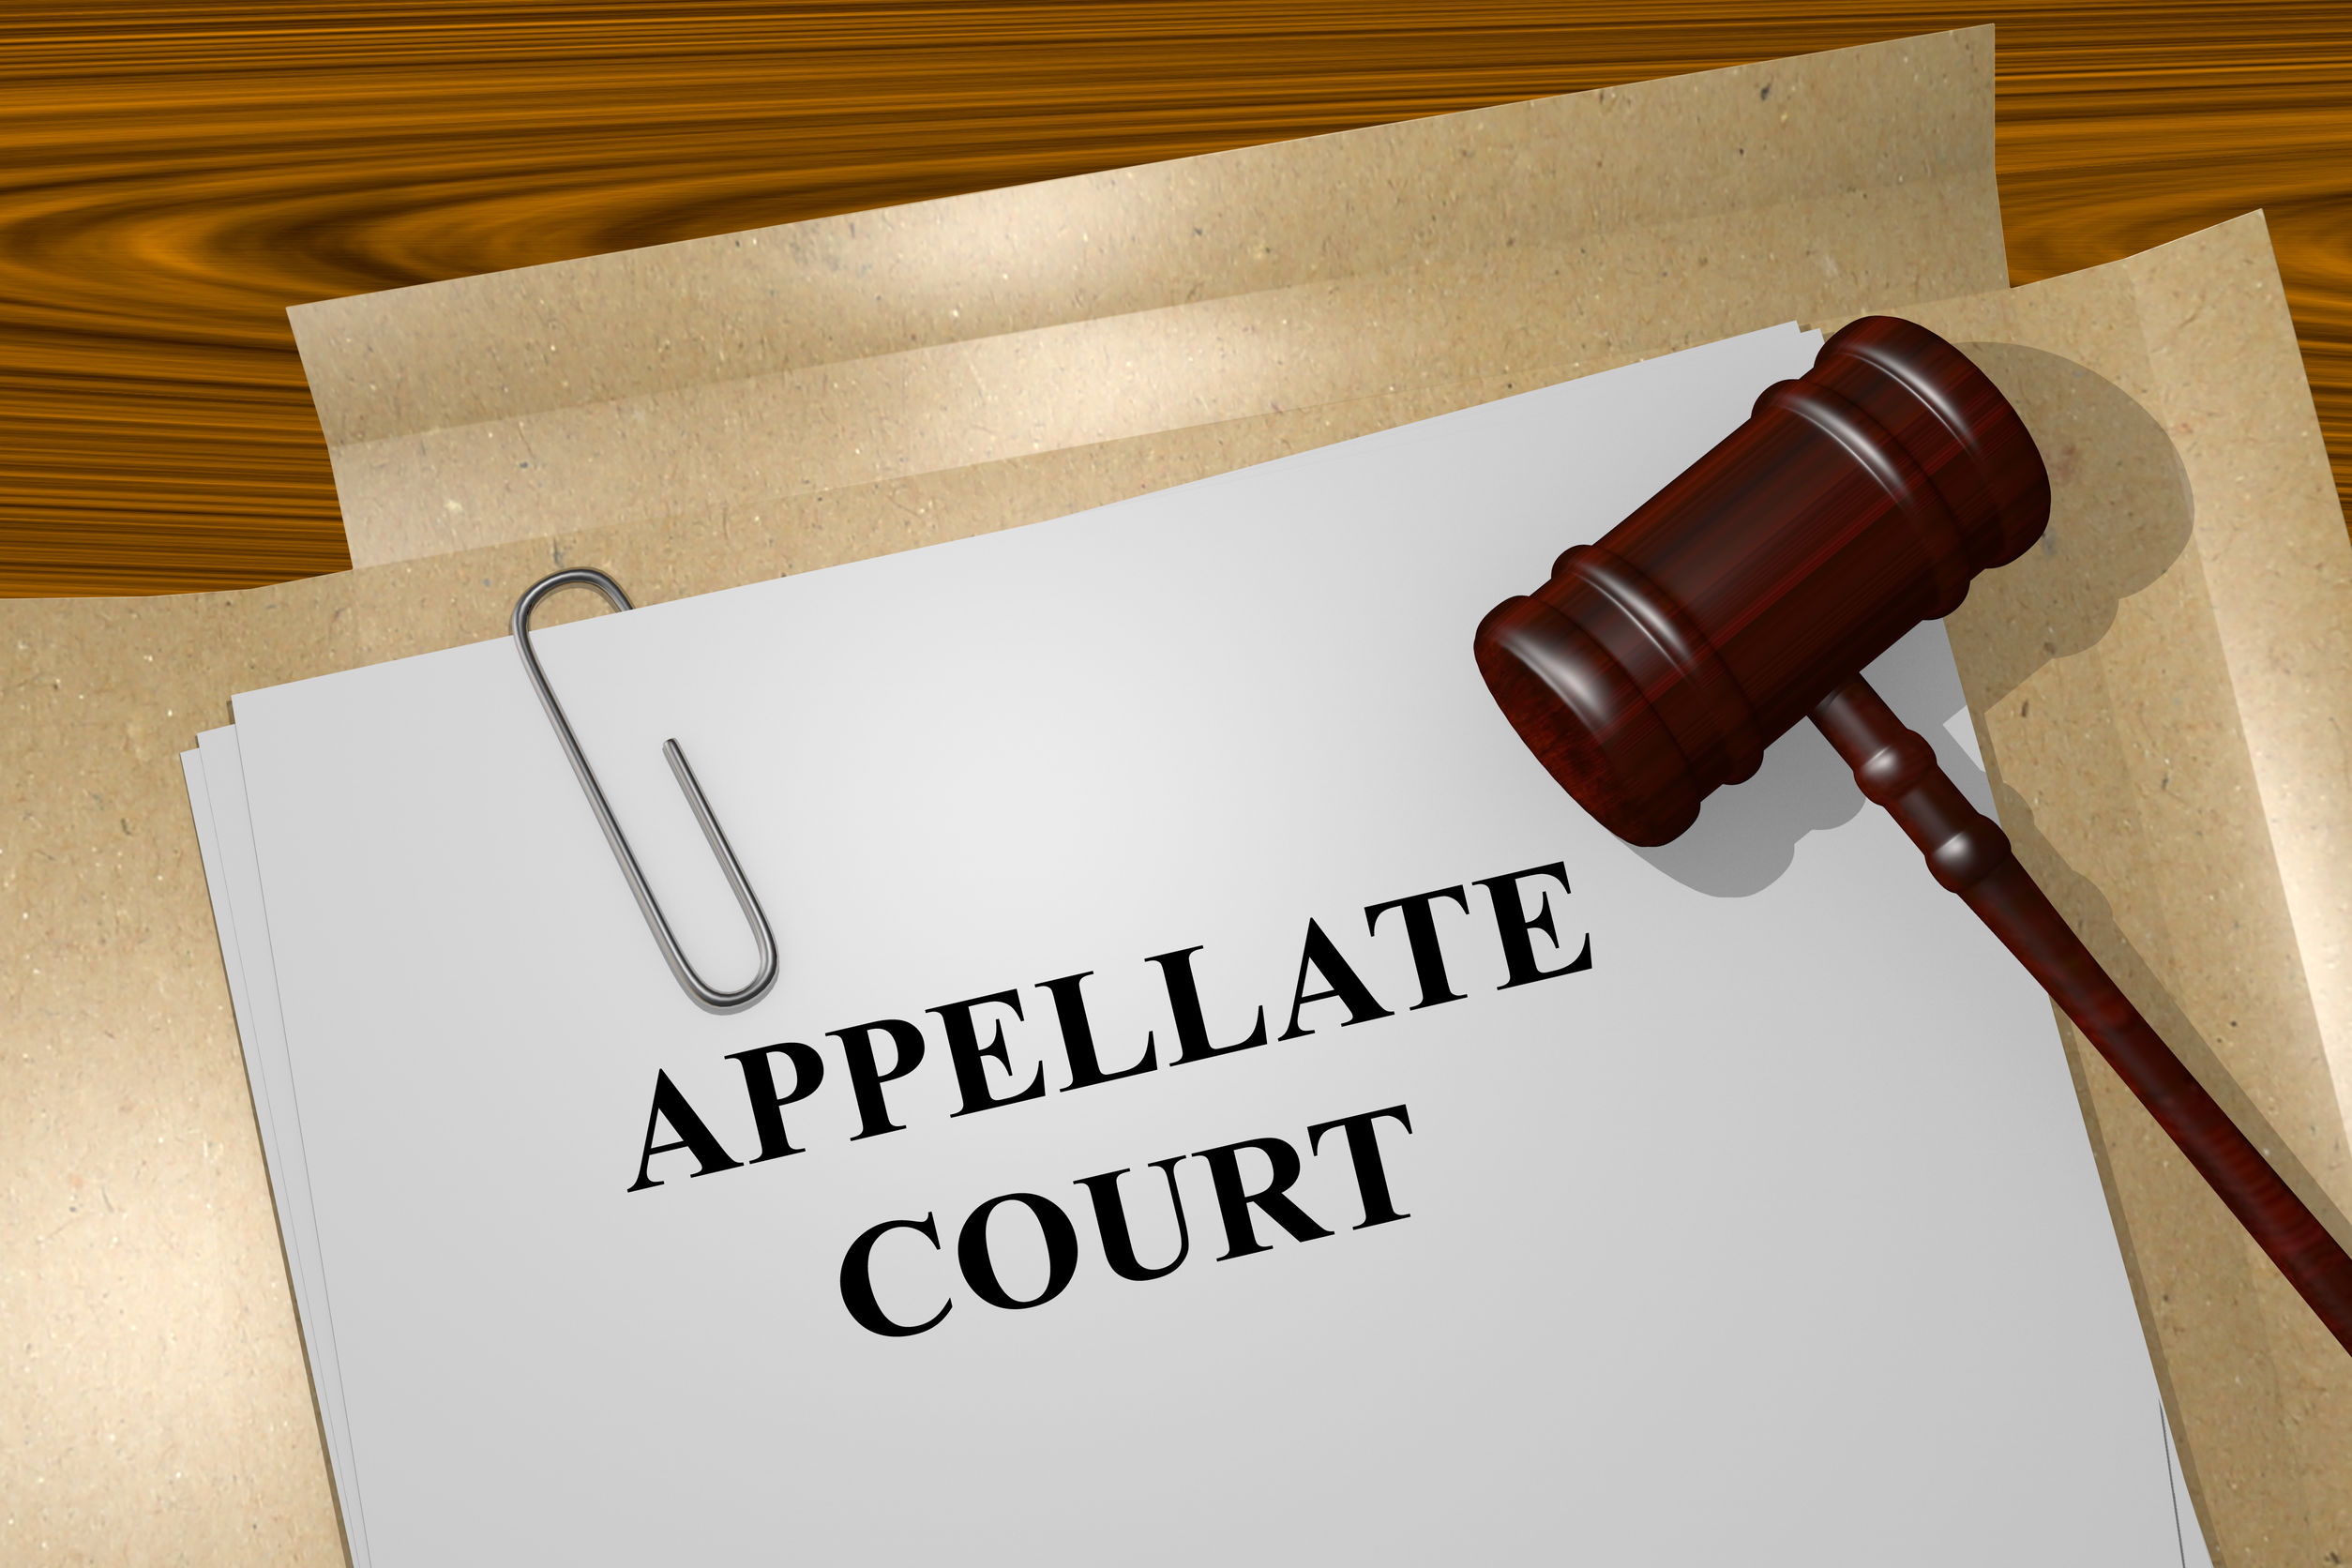 Appellate Court written on file folder